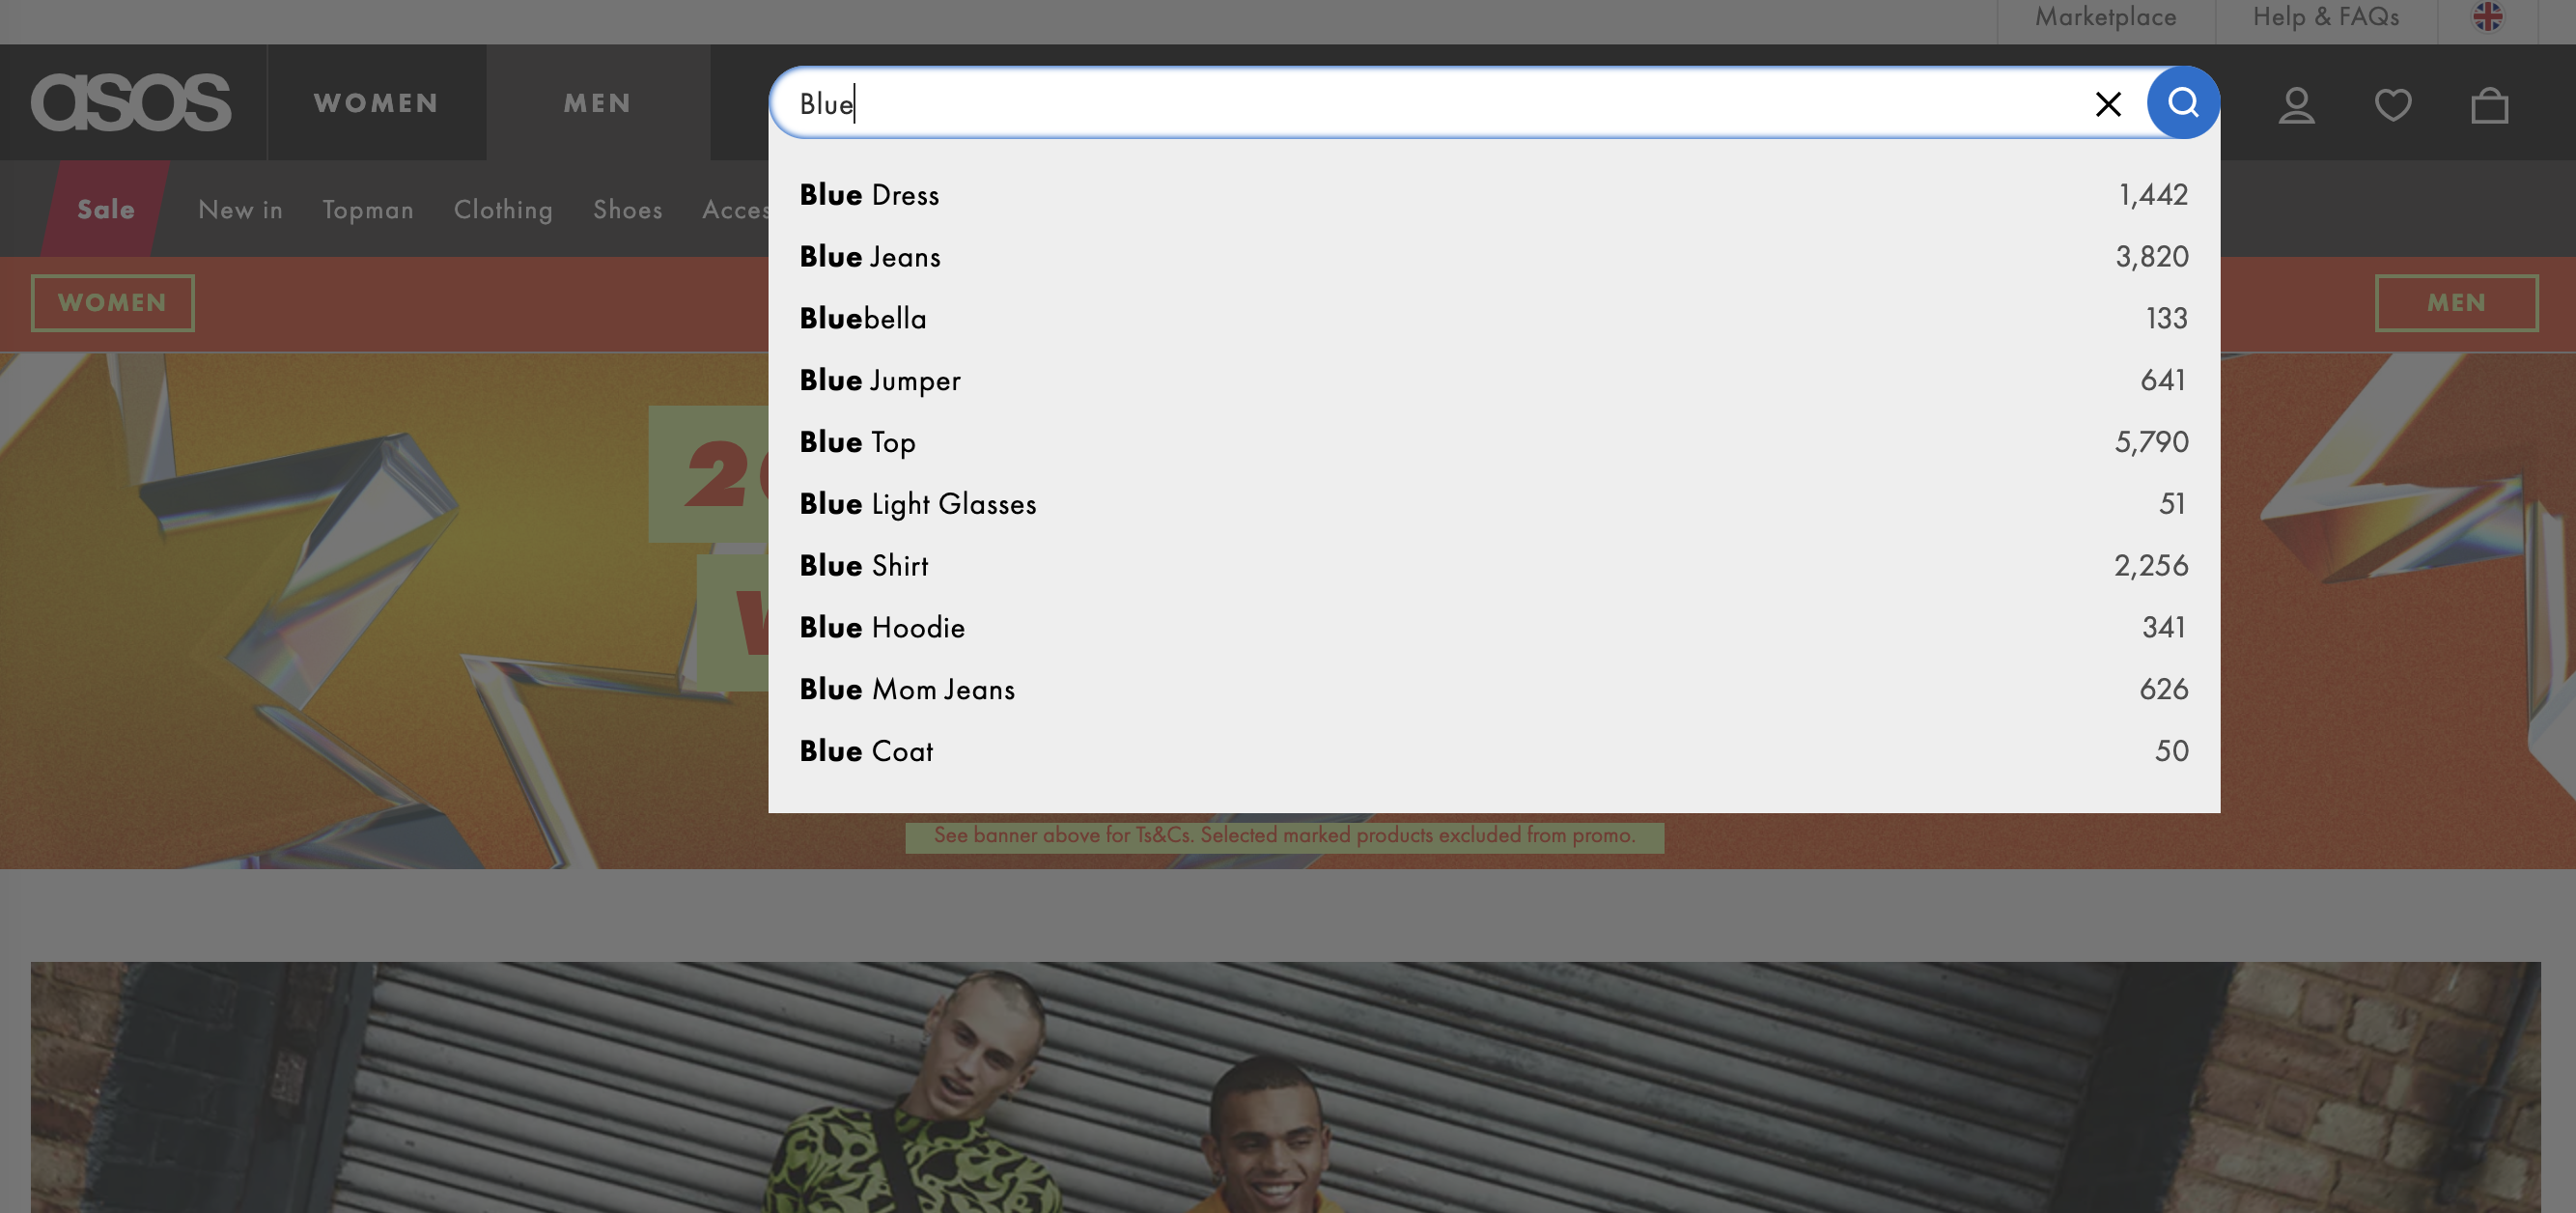 ASOS autofill their search bar with commonly typed keywords